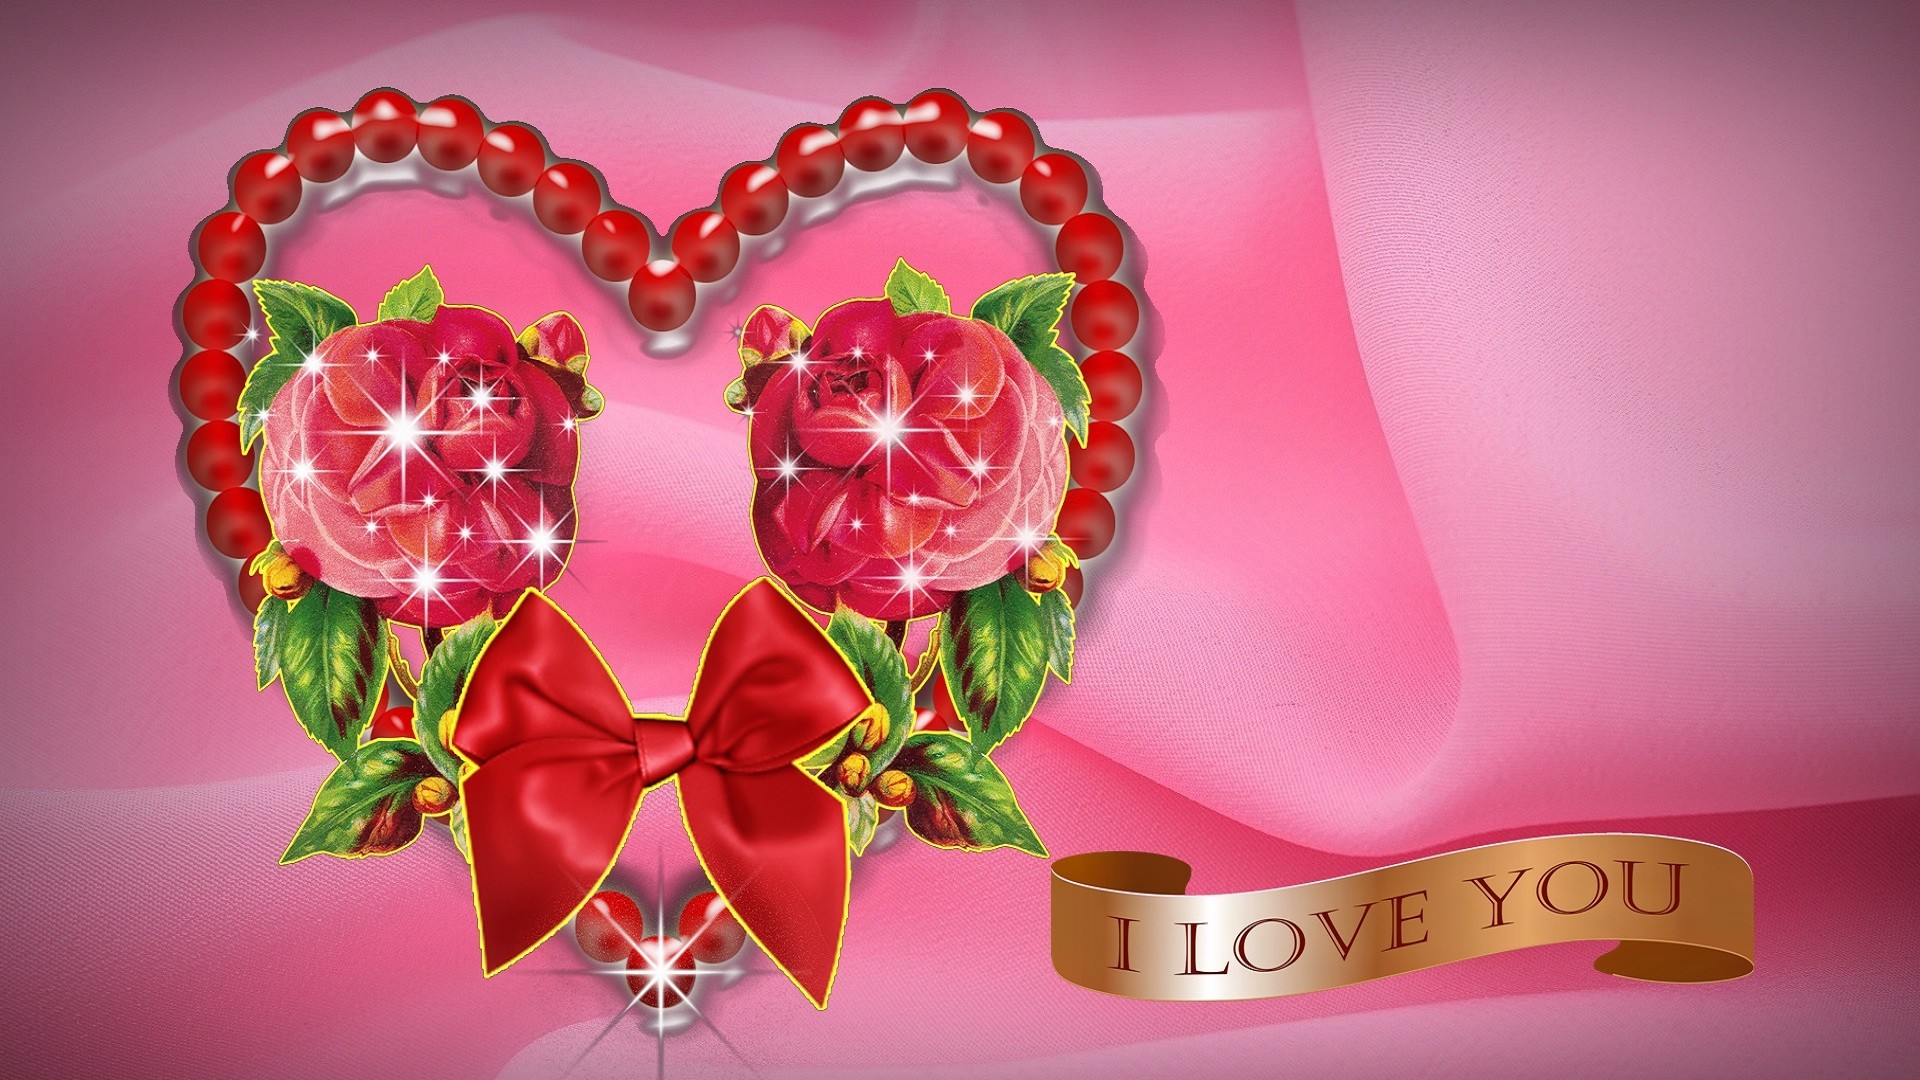 beautiful love wallpapers (51+ images)